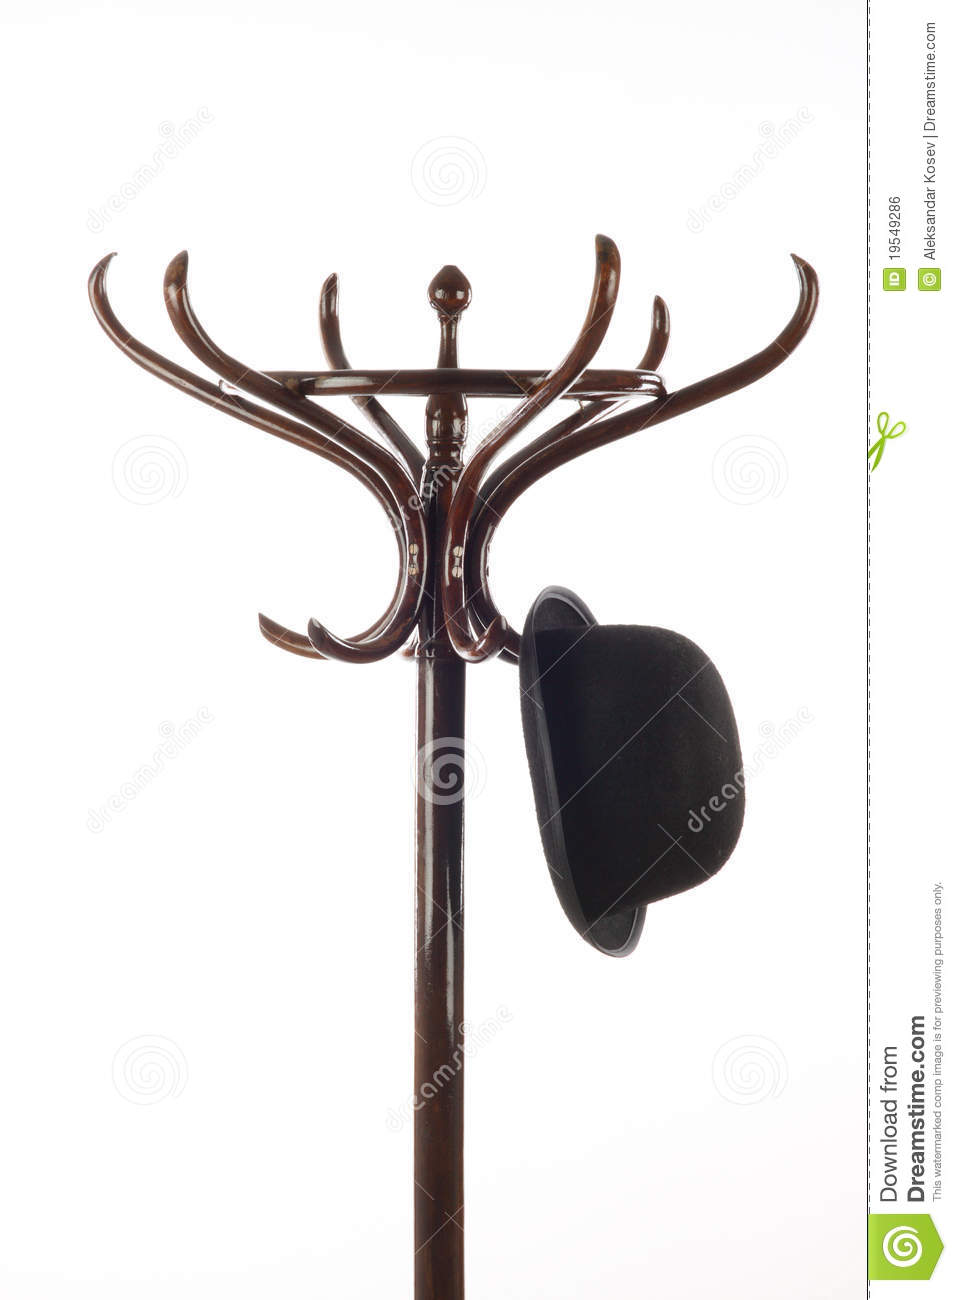 Wooden hat rack stand